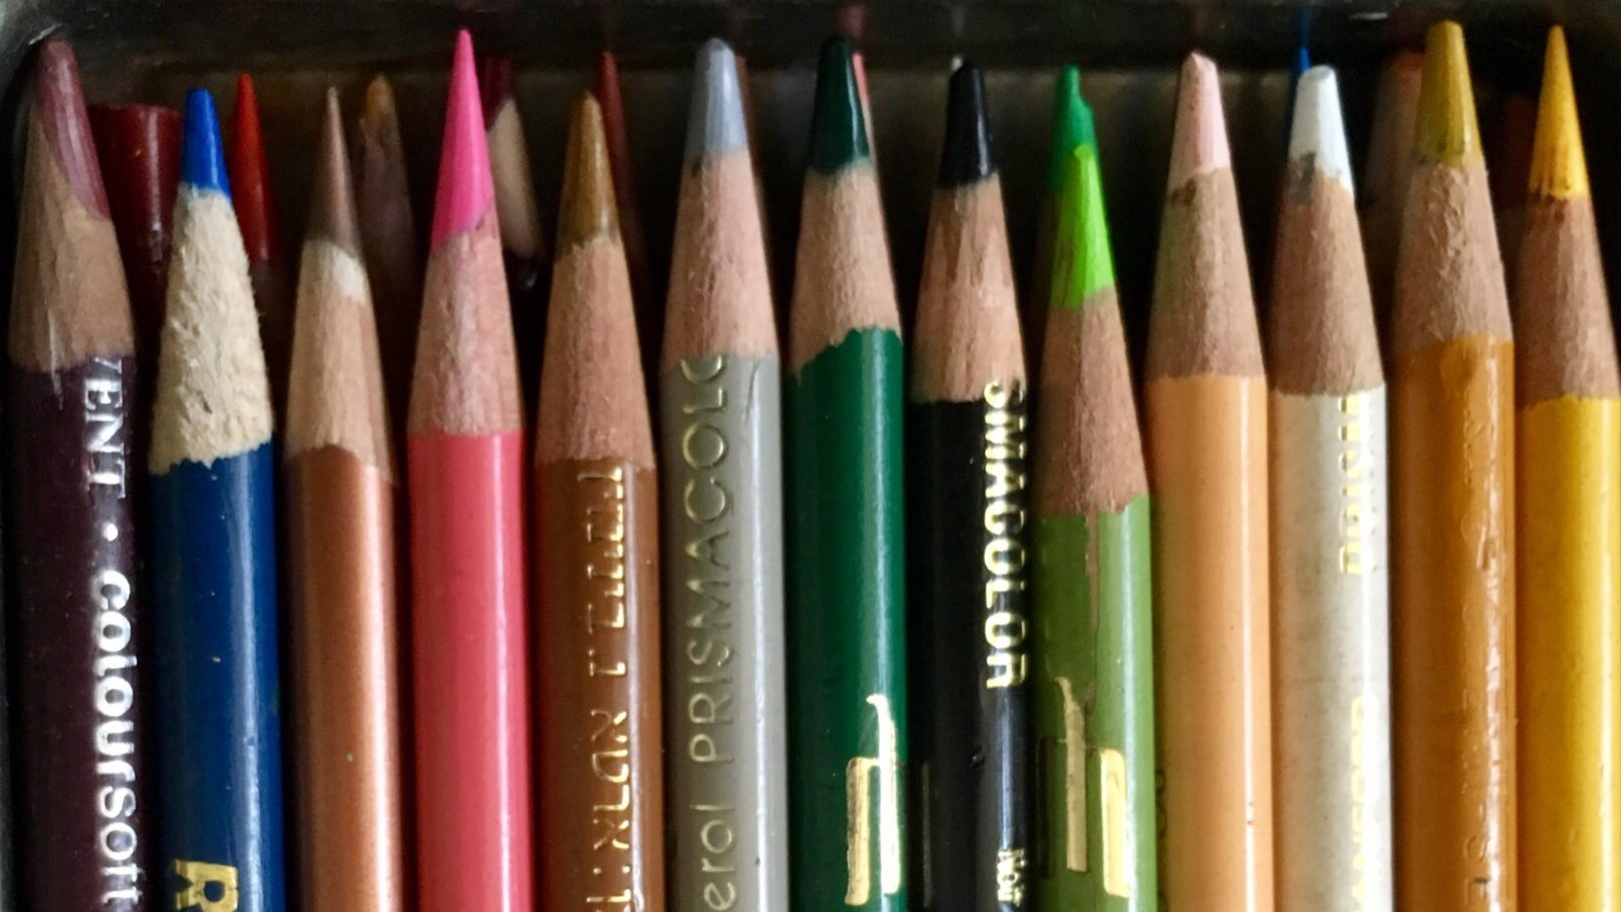 Colored Pencils On Point, by Stephen M. Frey